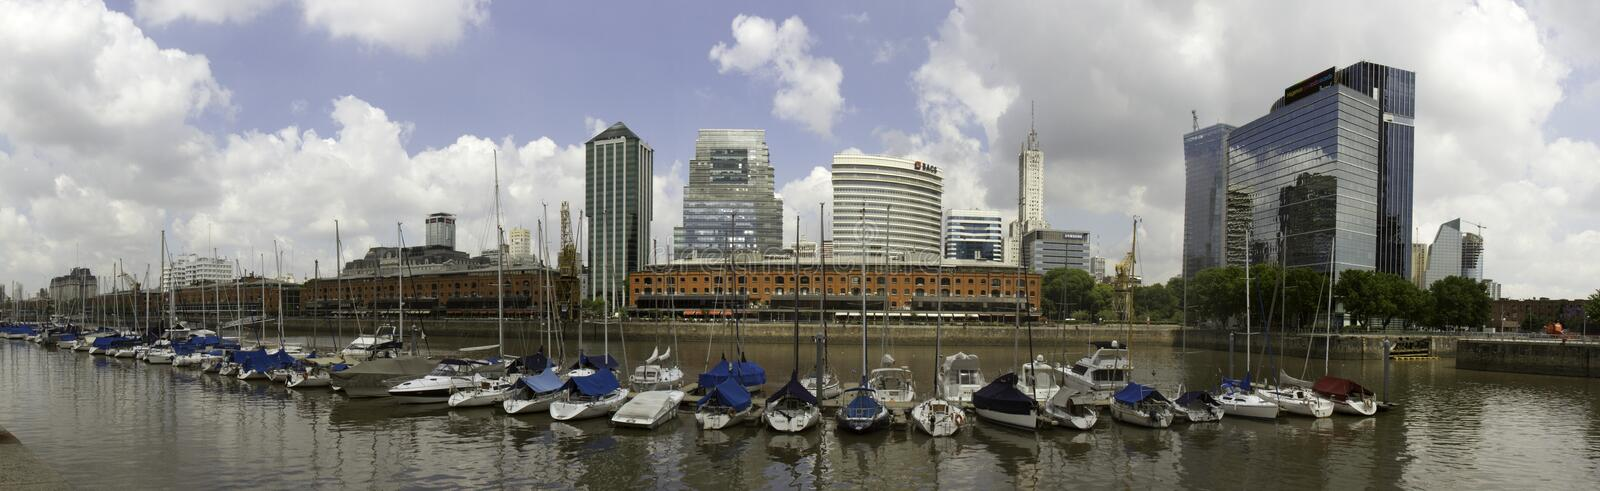 Panorama Puerto Madero, Buenos Aires, Argentina. Panorama of Puerto Madero district in Buenos Aires, Argentina royalty free stock photography